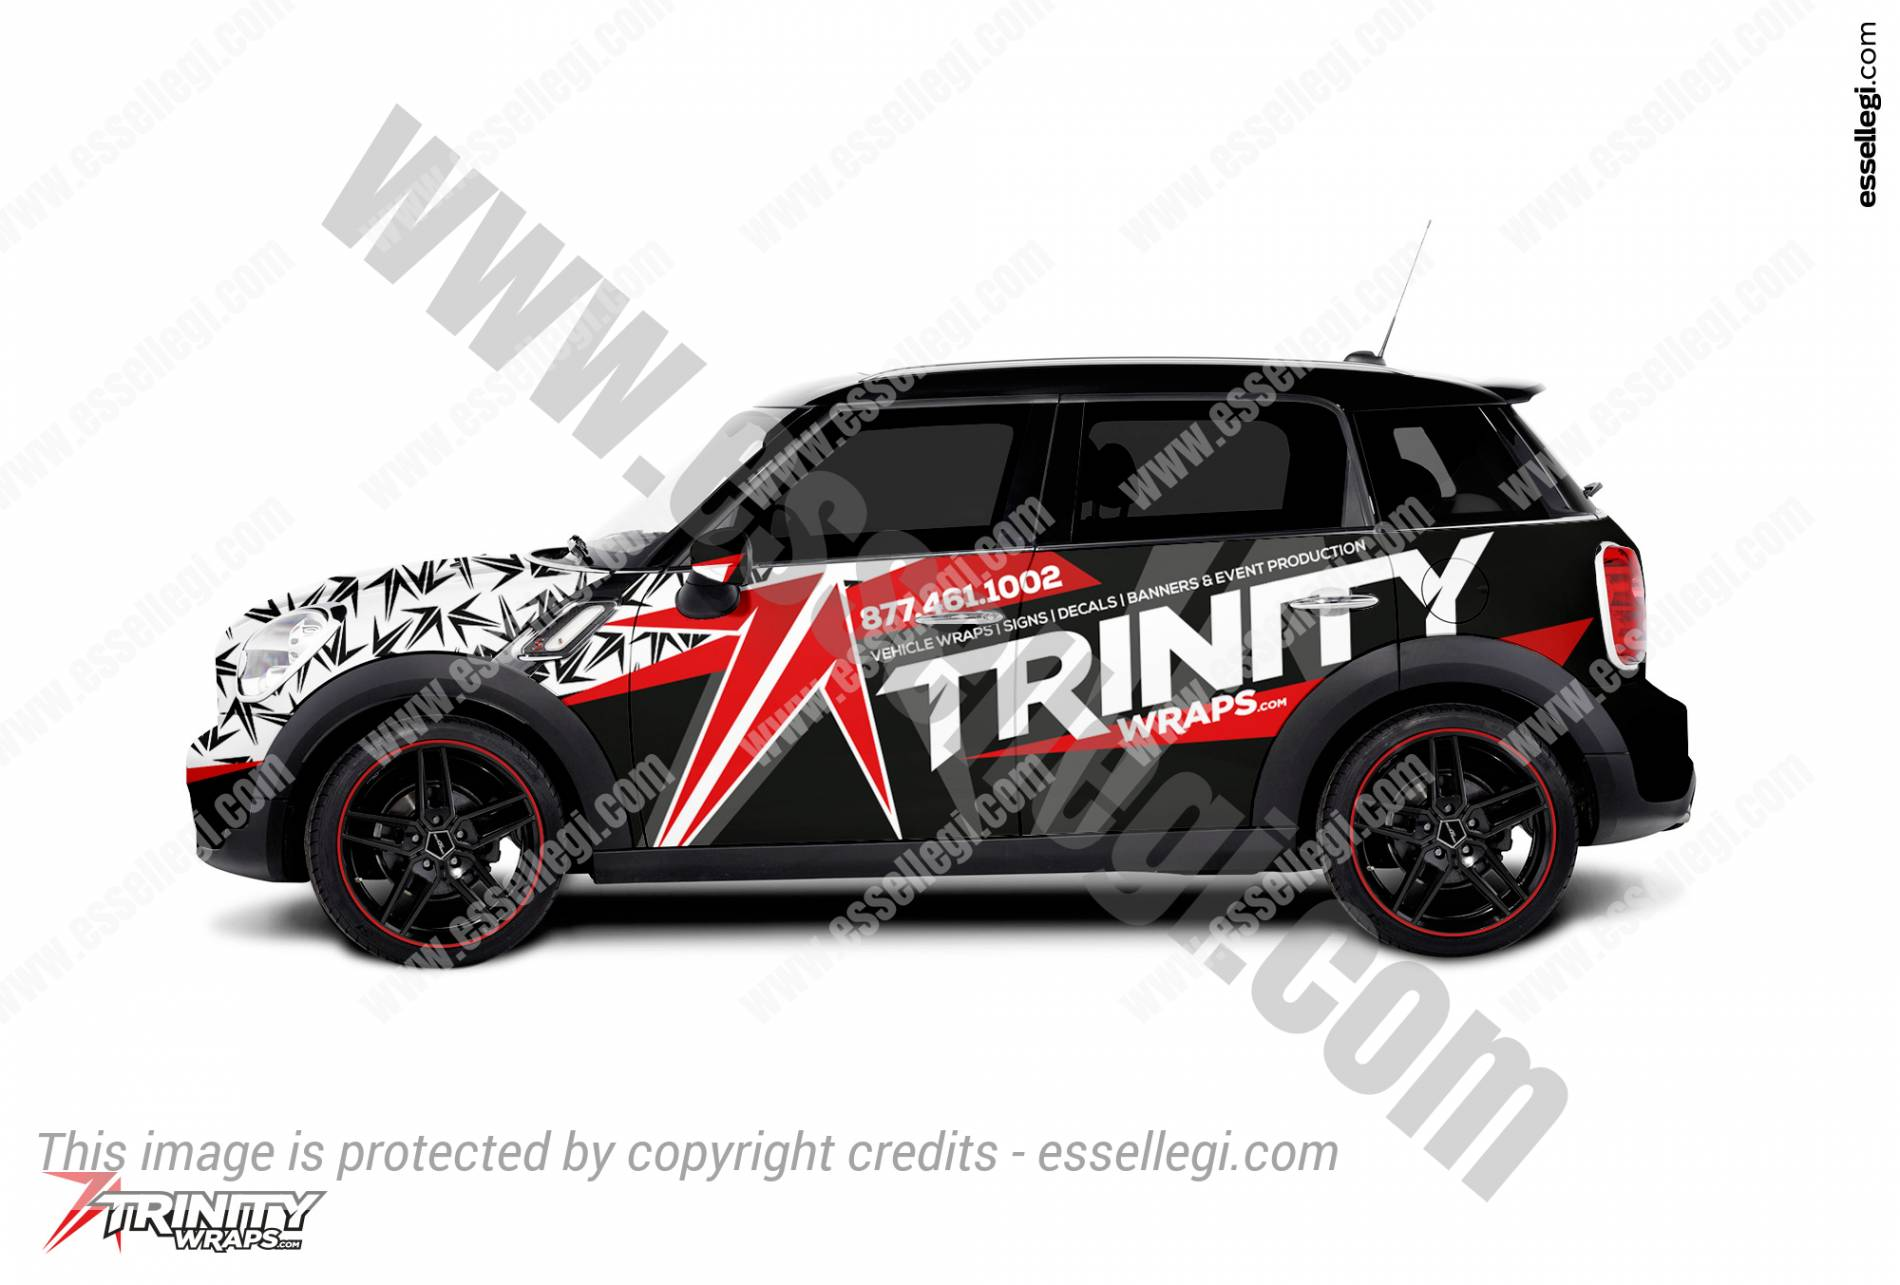 TRINITY GFX | CAR WRAP DESIGN 🇺🇸